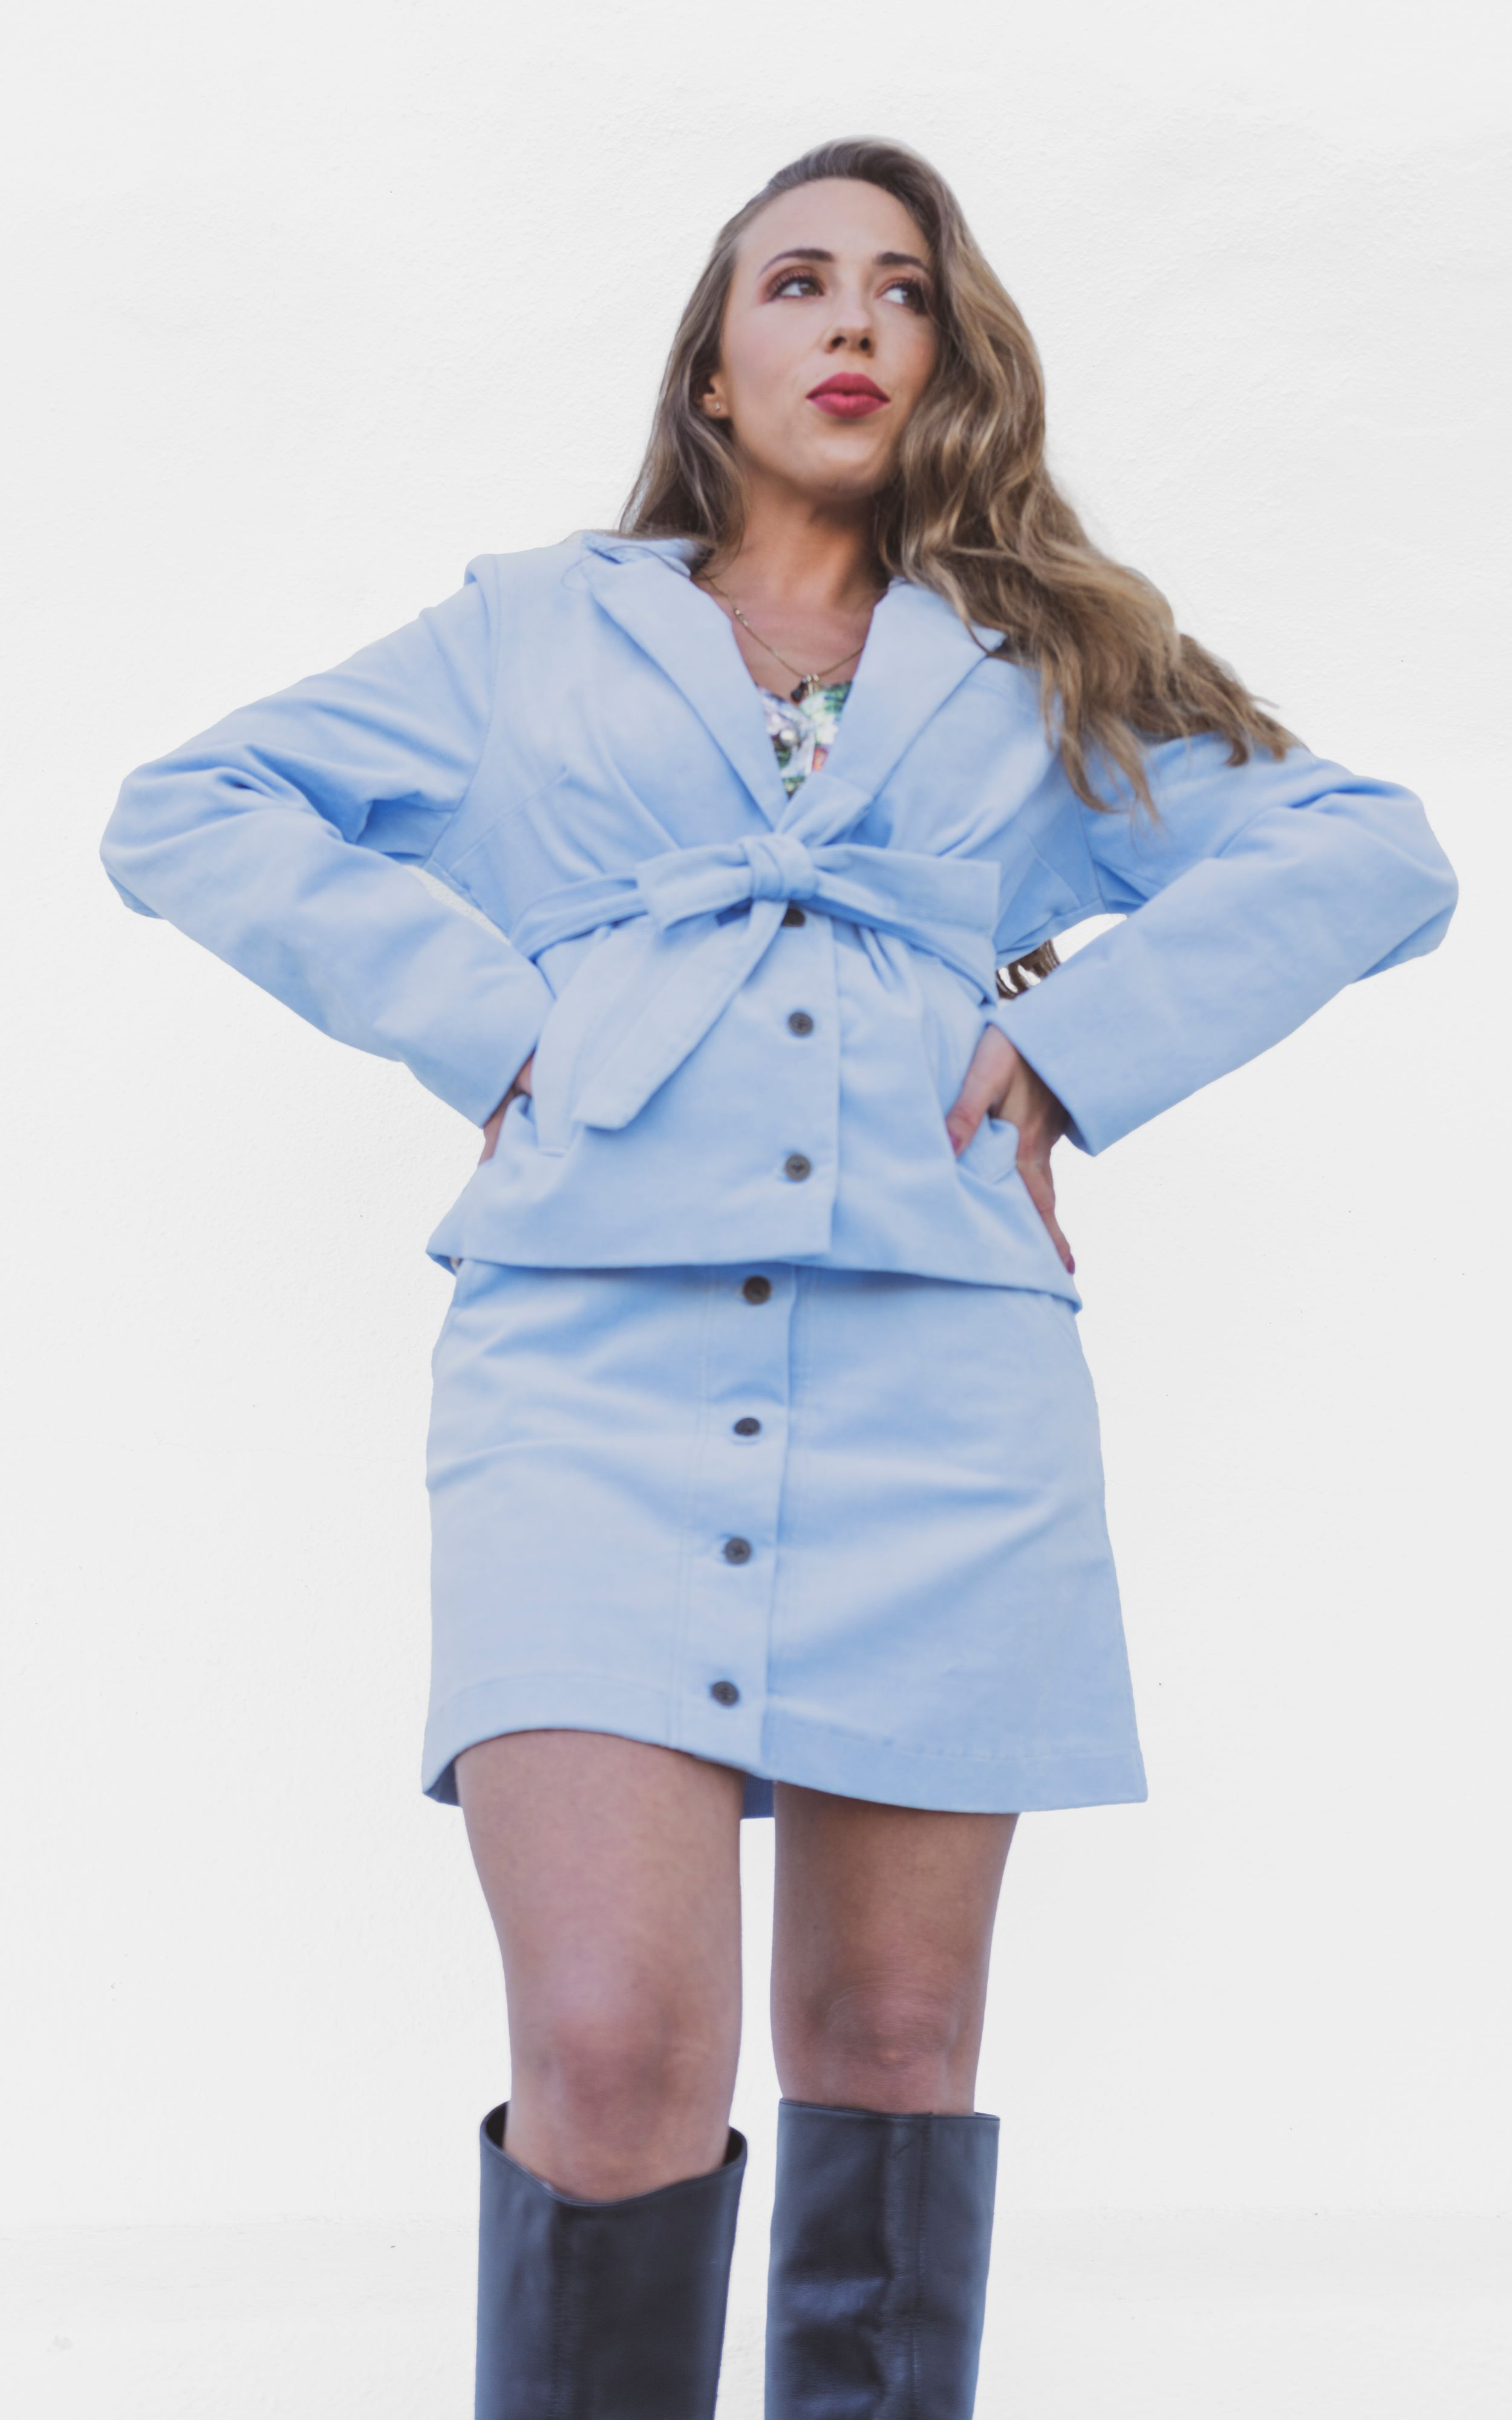 Ribbed Corduroy High Waist Button Up Mini Skirt Baby Blue